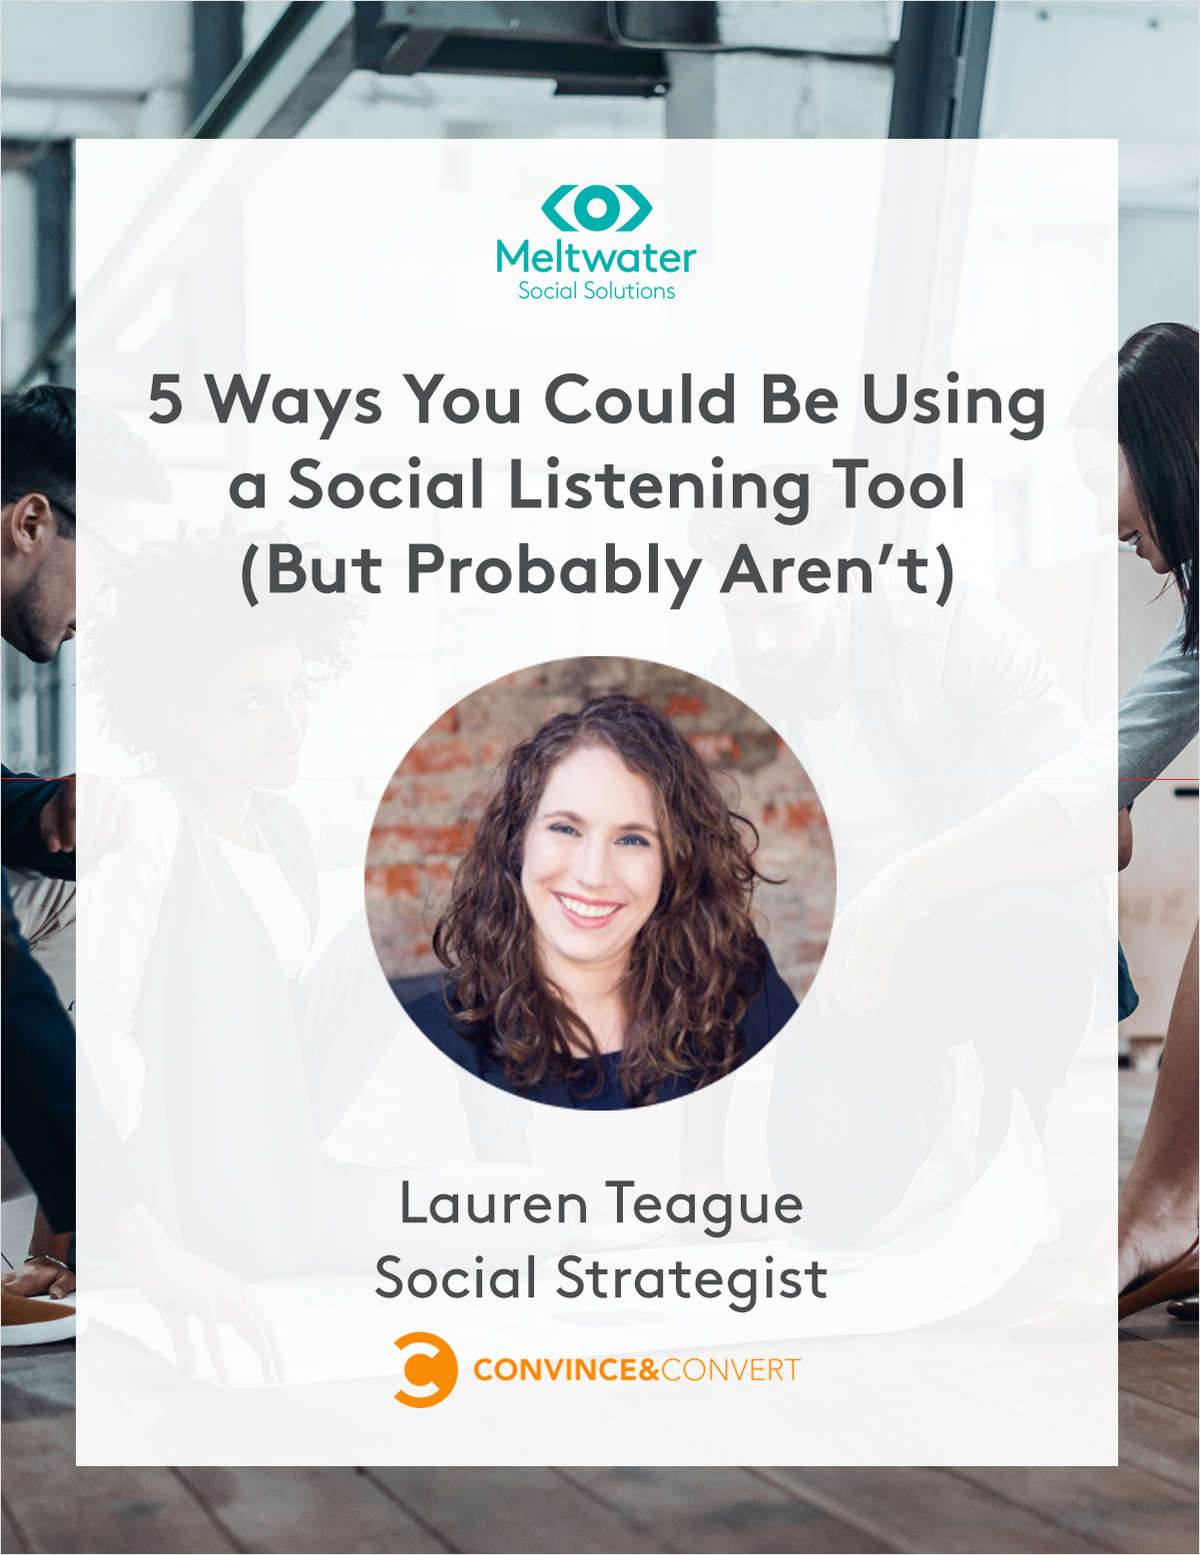 Webinar: 5 Ways You Could Be Using a Social Listening Tool (But Probably Aren't)